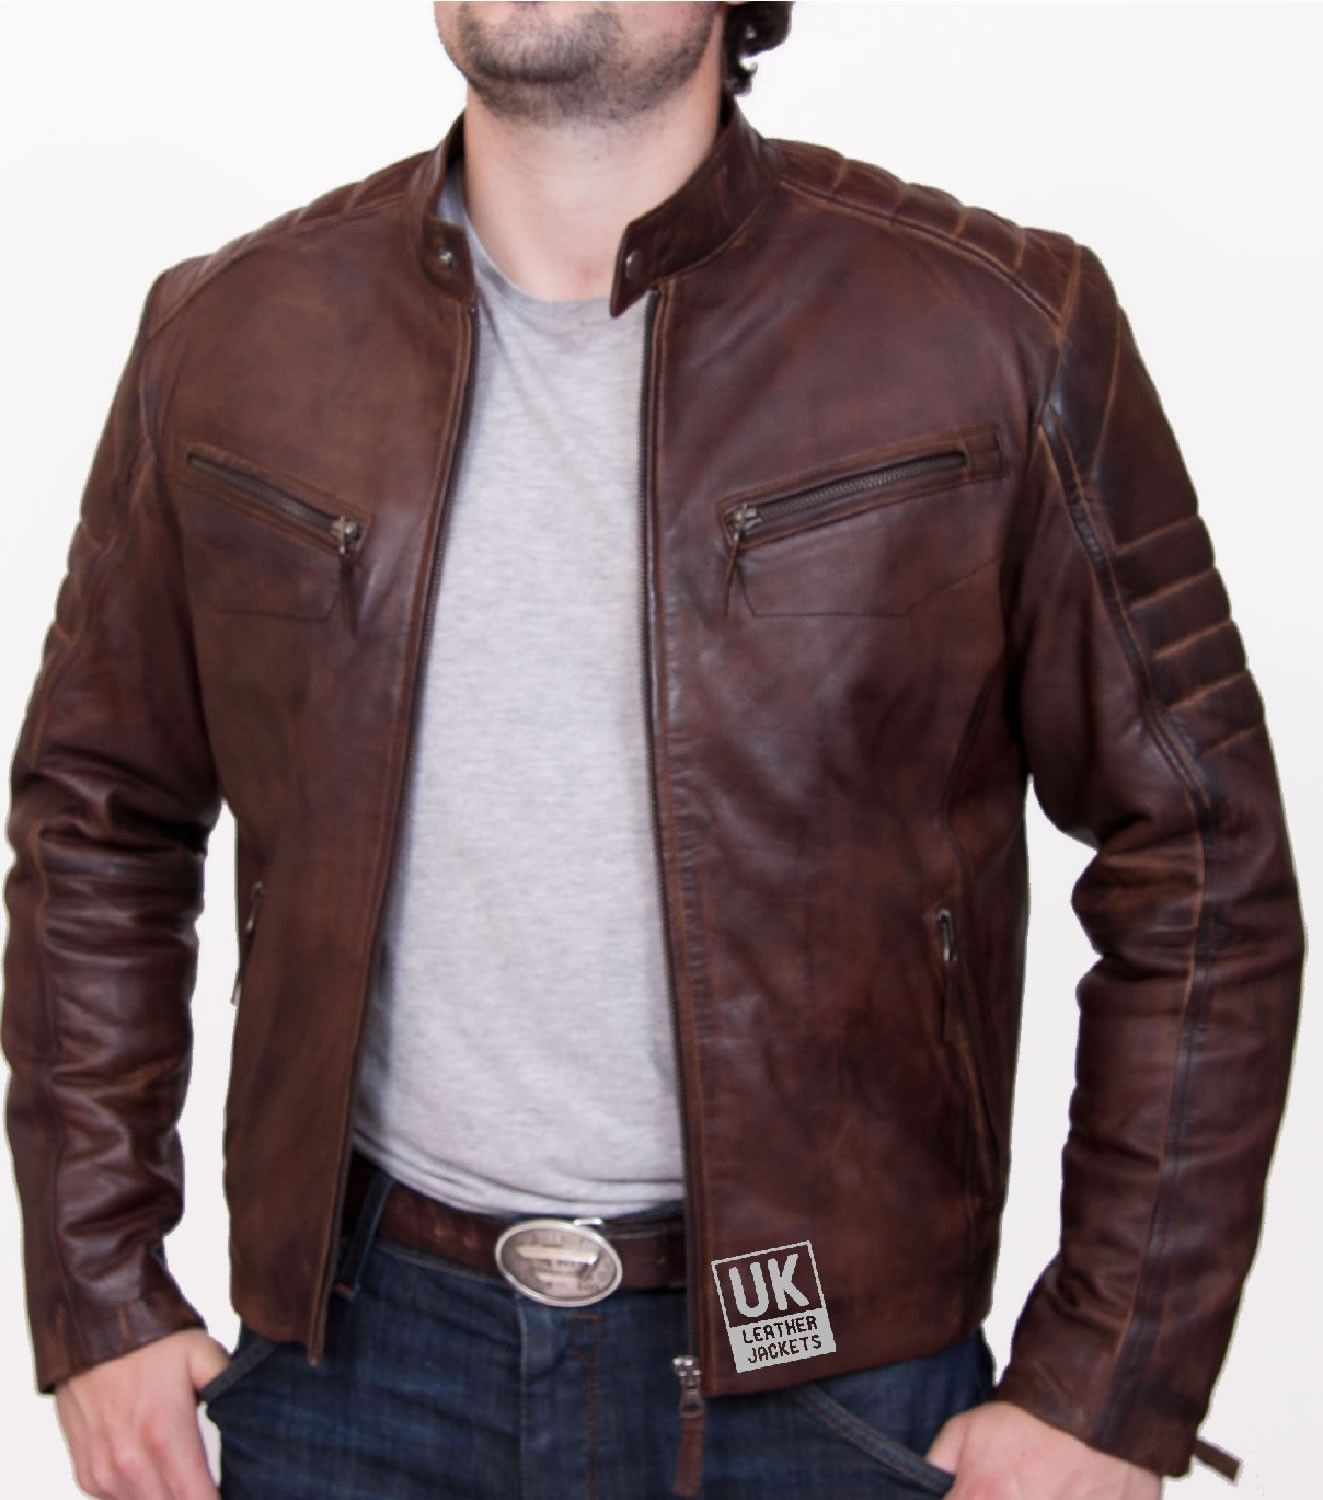 Mens Brown Leather Biker Jacket Kestrel UK LJ